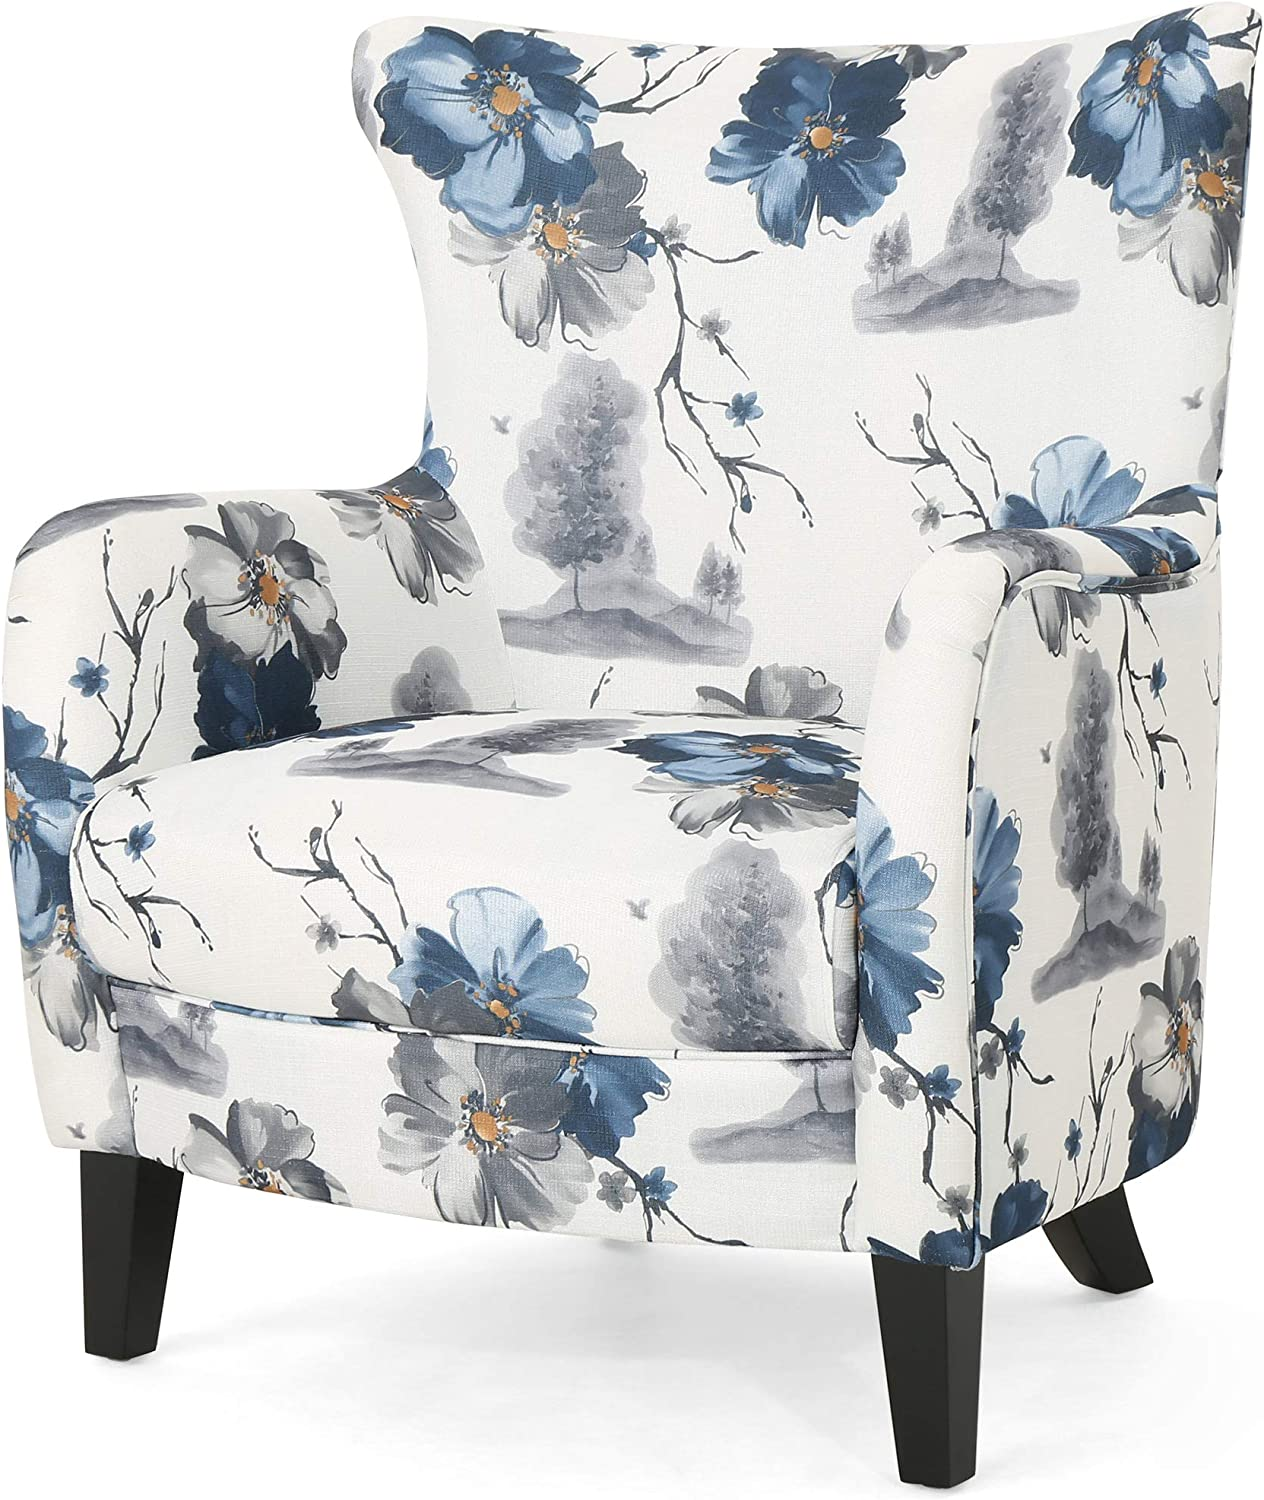 Christopher Knight Home Oliver Fabric Print Chair Br Club Dark Beauty products Max 83% OFF